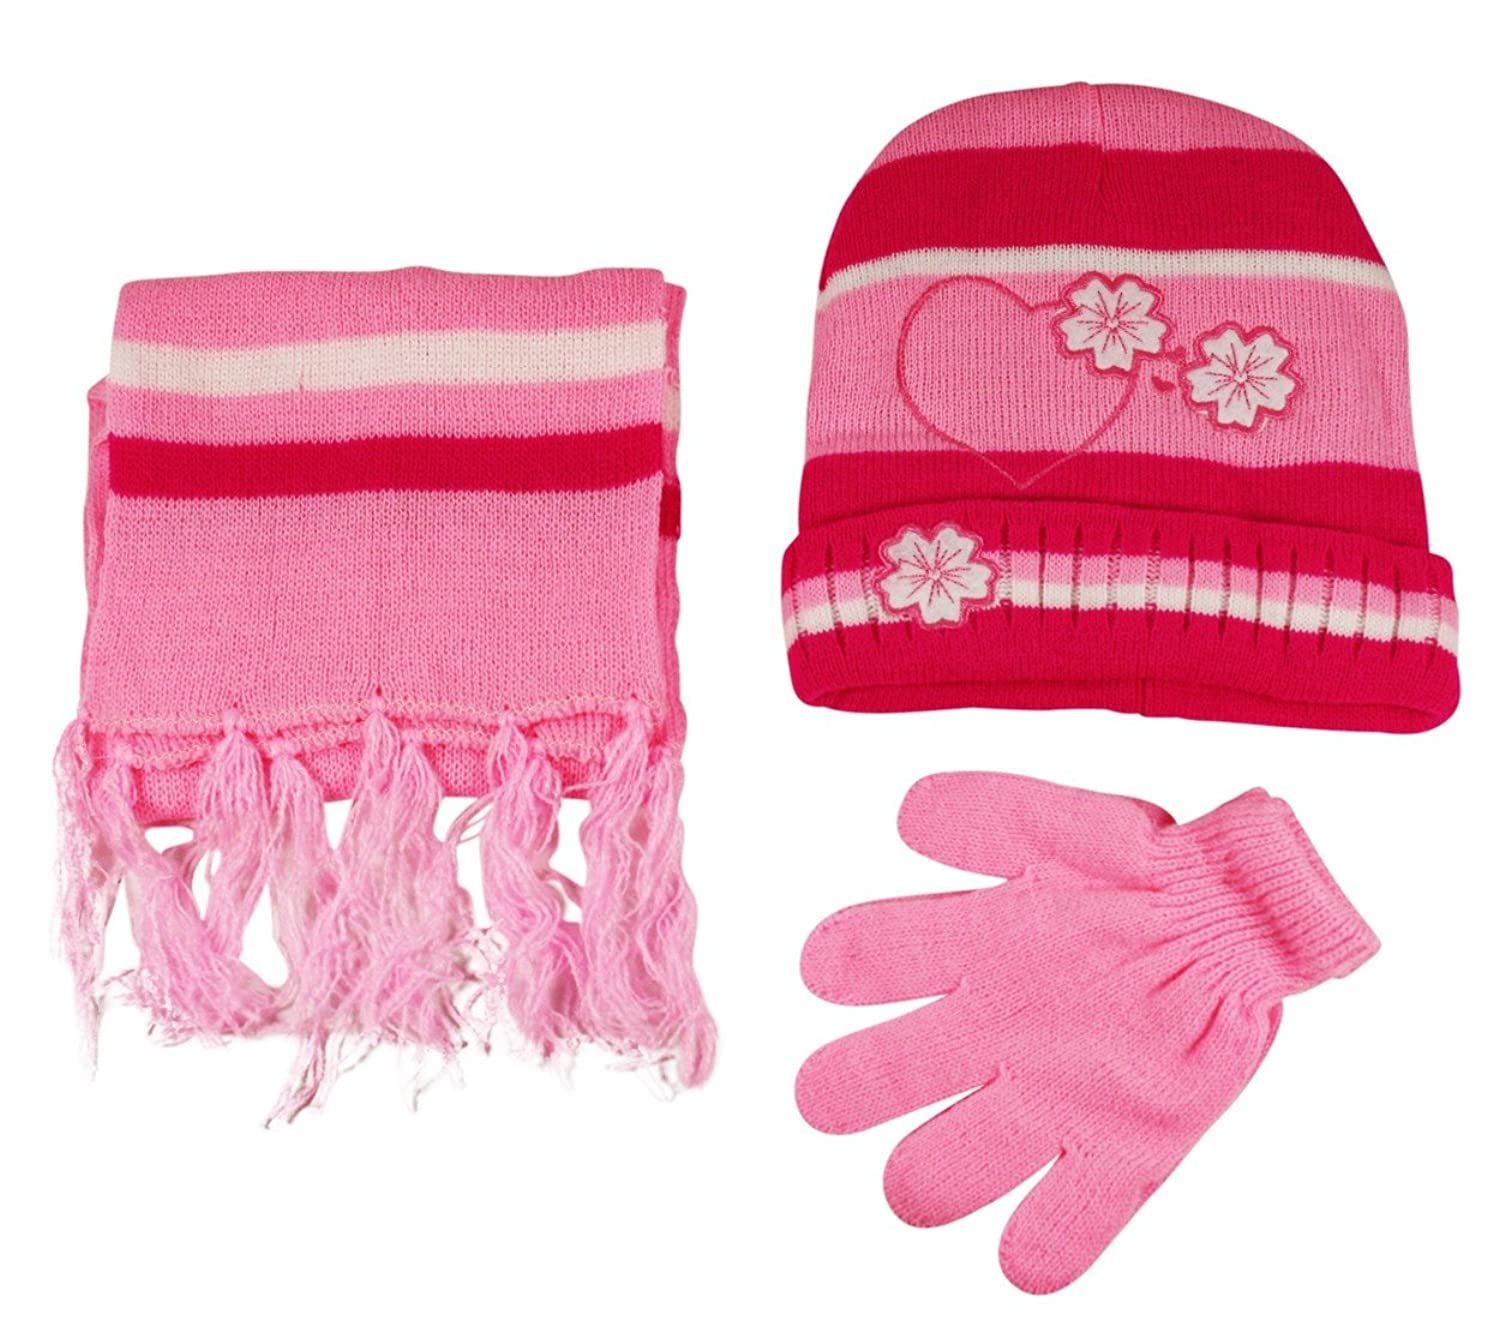 PACK OF 2 DISNEY WINTER WARM BEANIE HAT /& GLOVES FOR KIDS GIRLS /& BOYS 1-5 YEAR